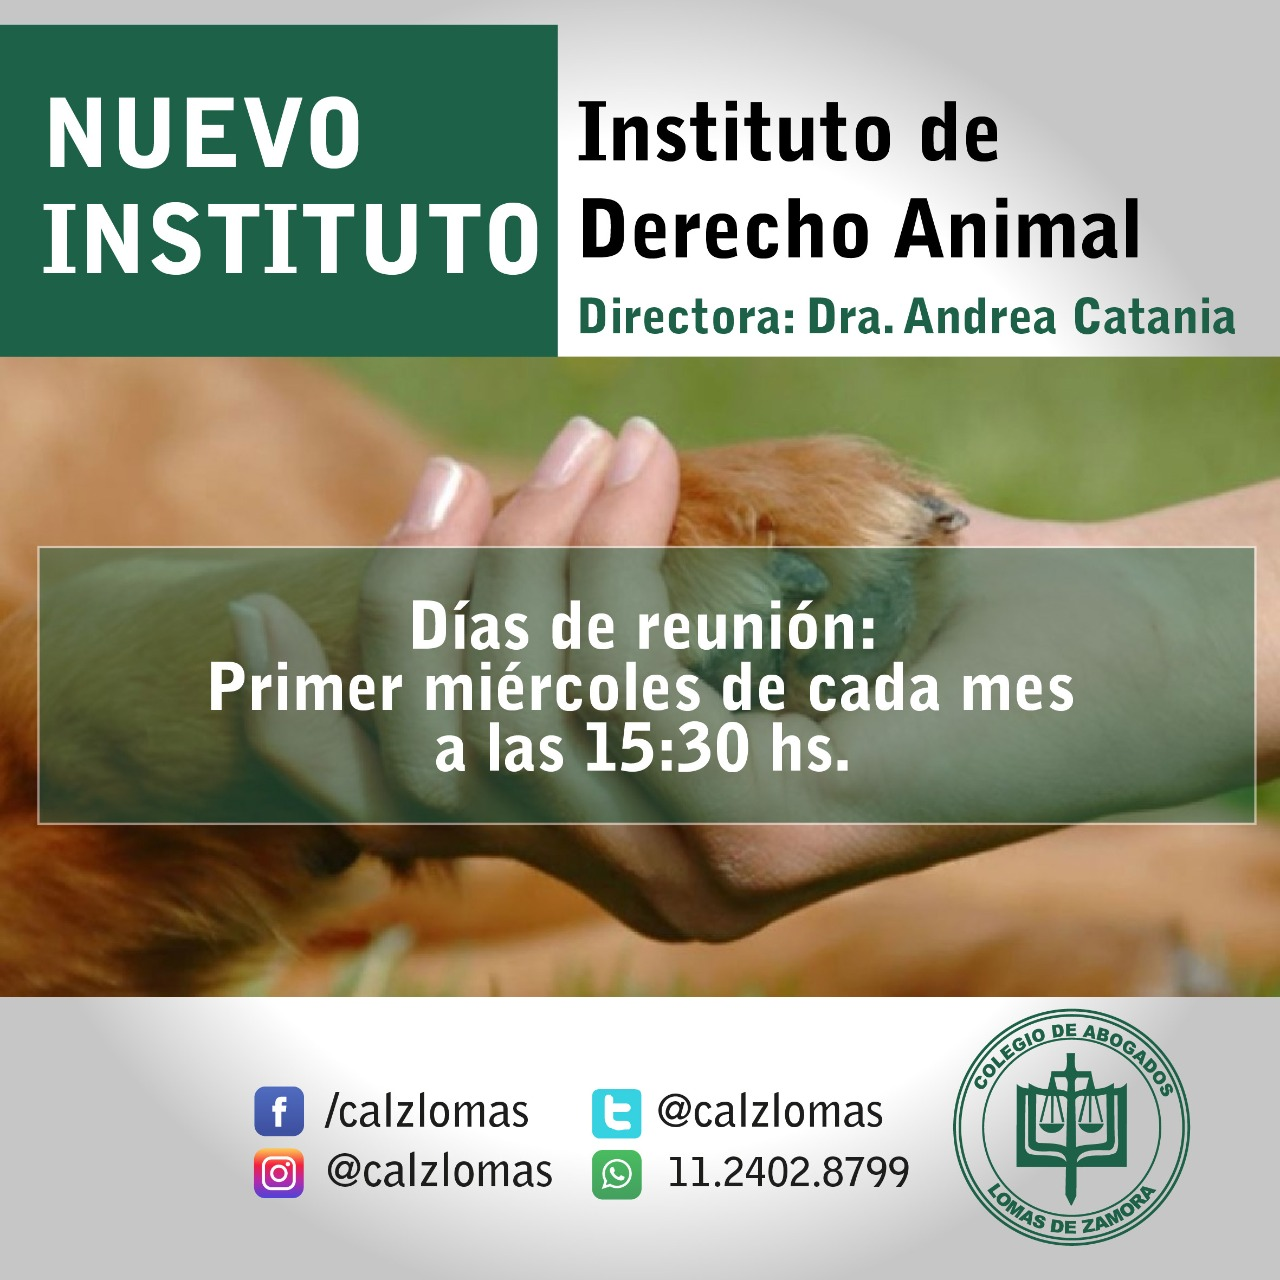 Se creó el Instituto de Derecho Animal